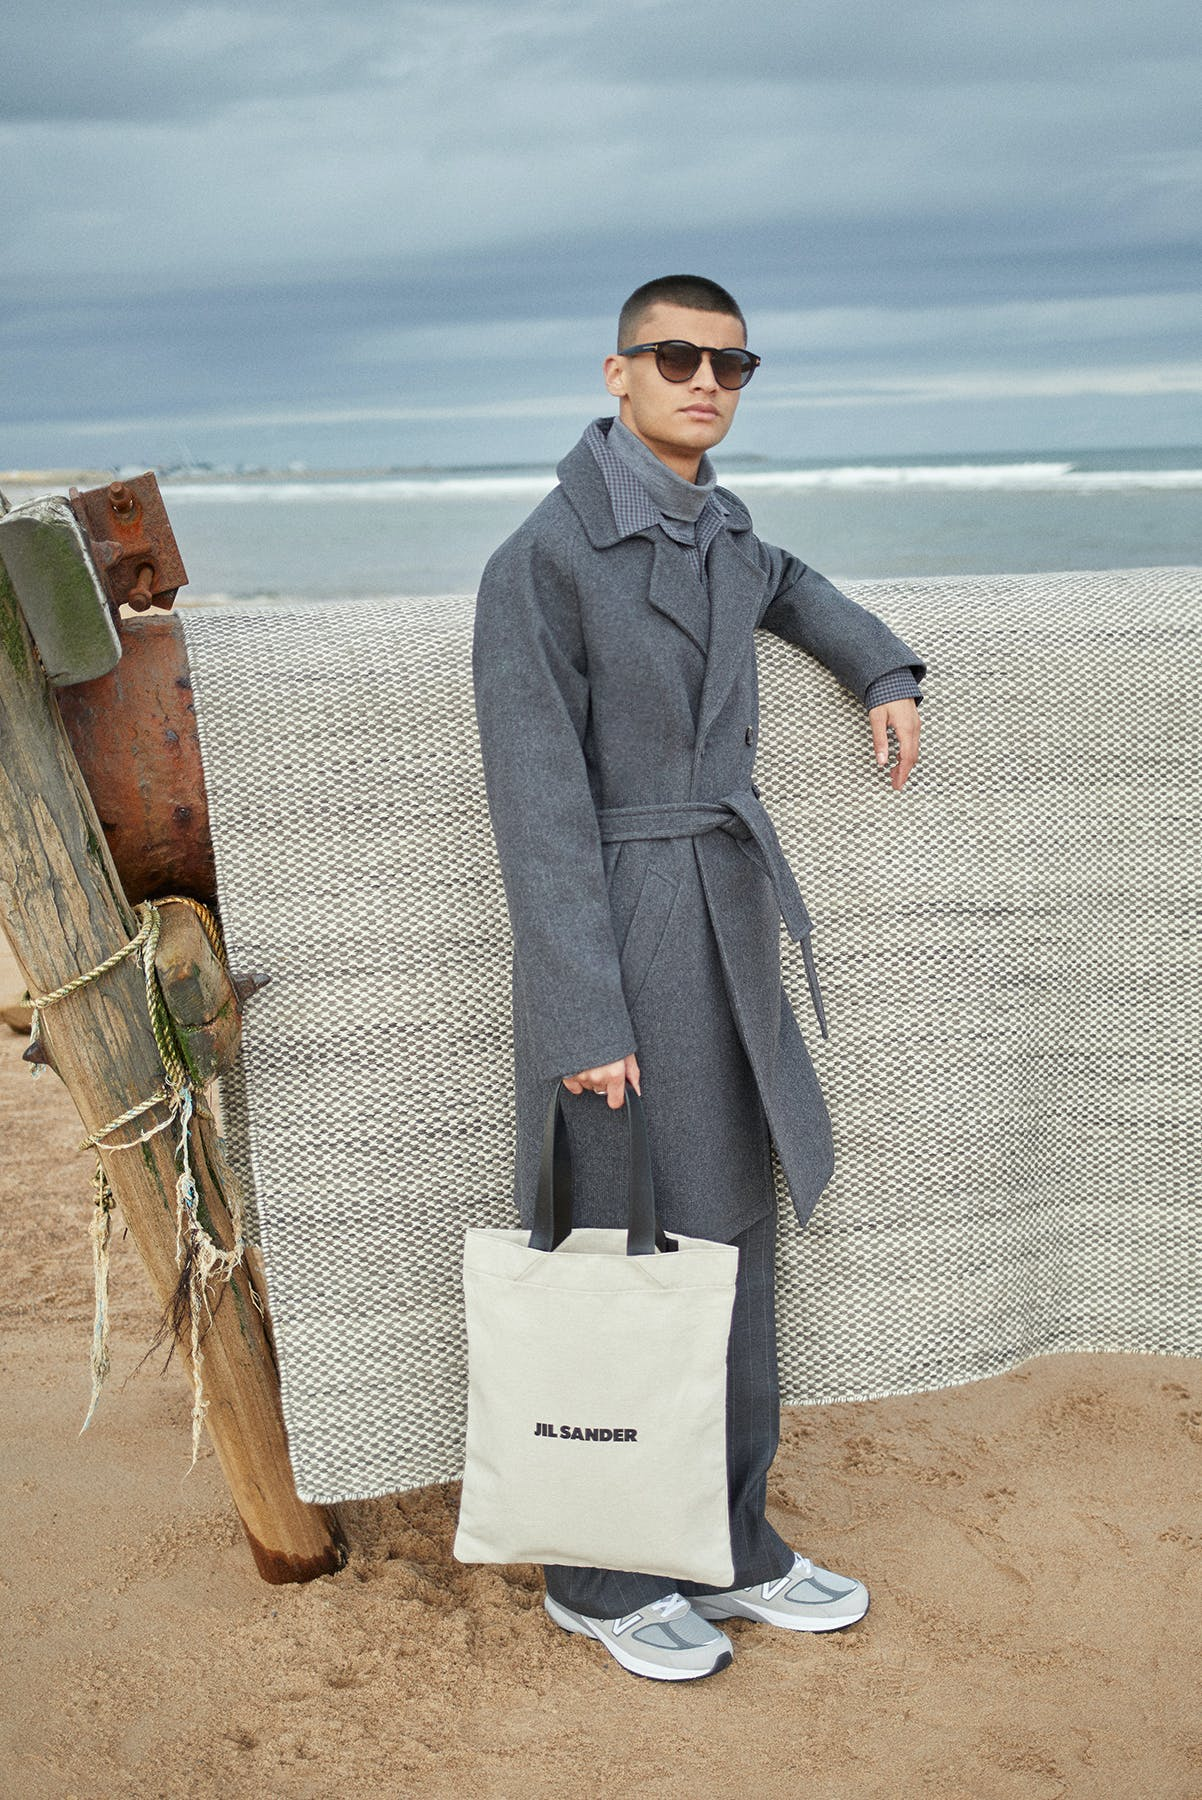 Jil Sander Tote Bag for Bare Minimum END. editorial